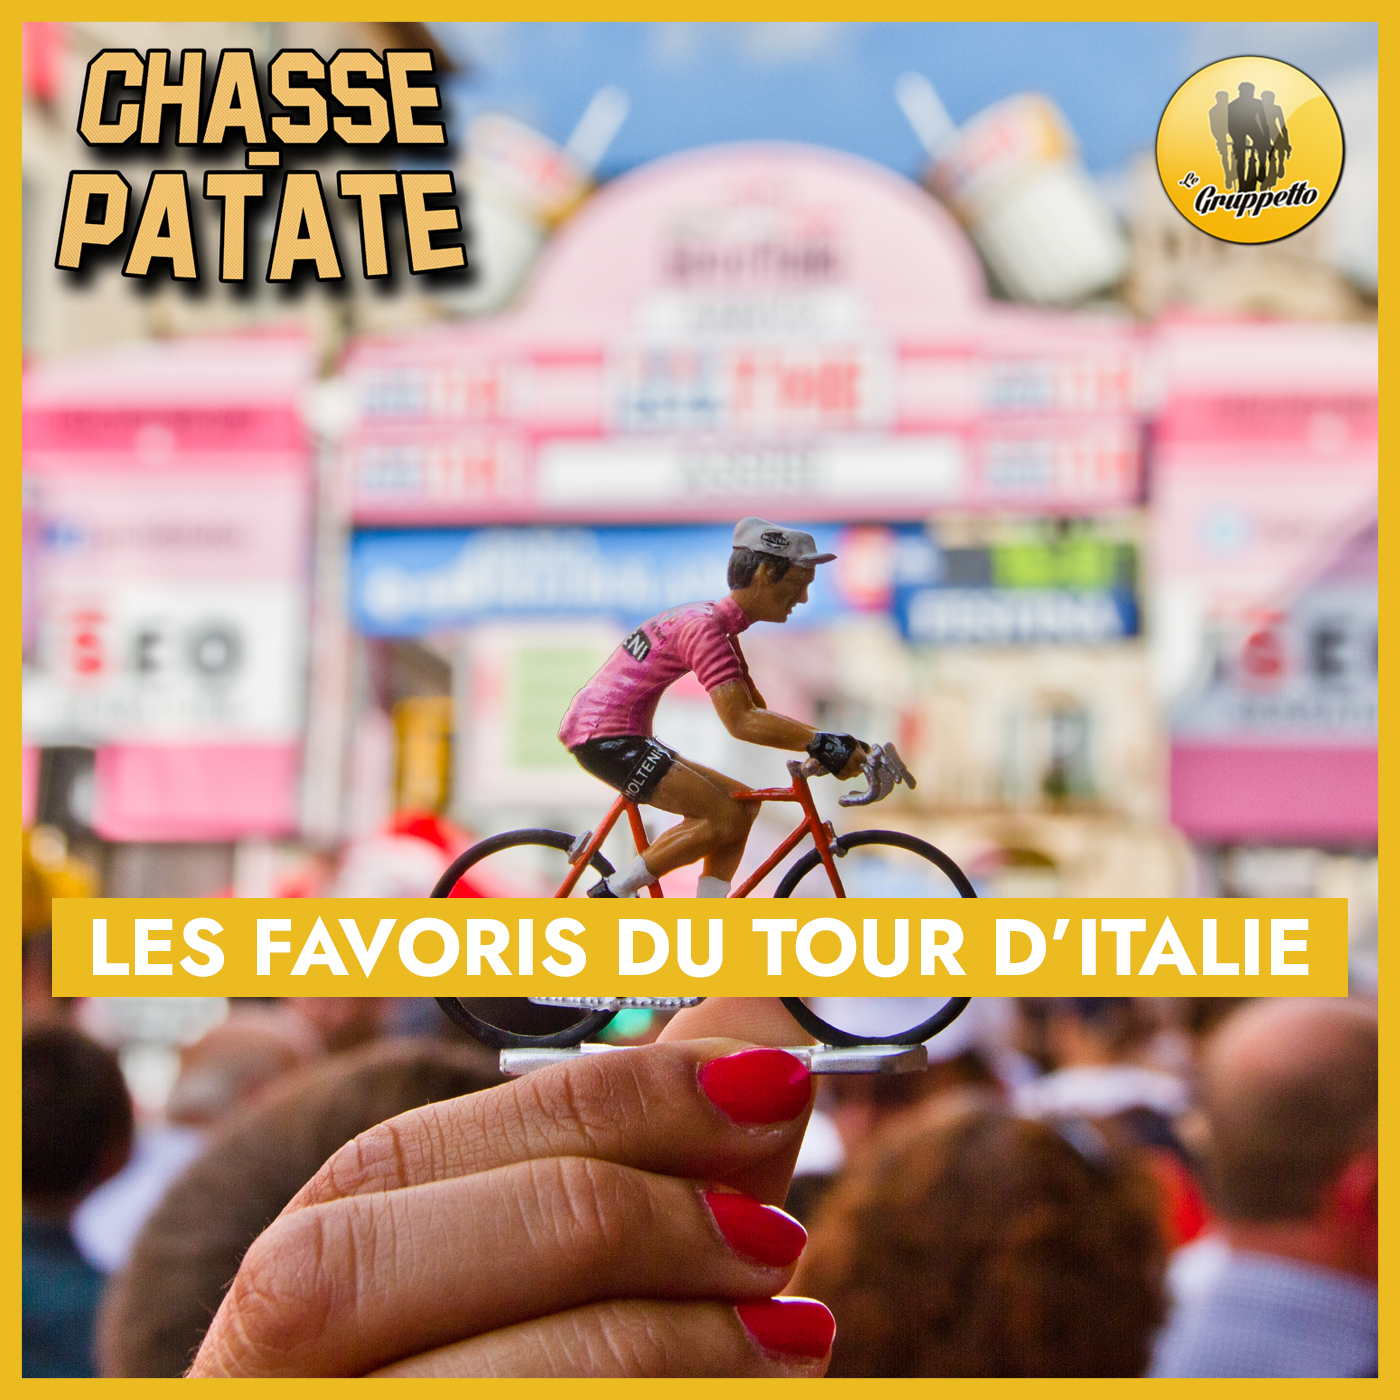 Chasse - Patate